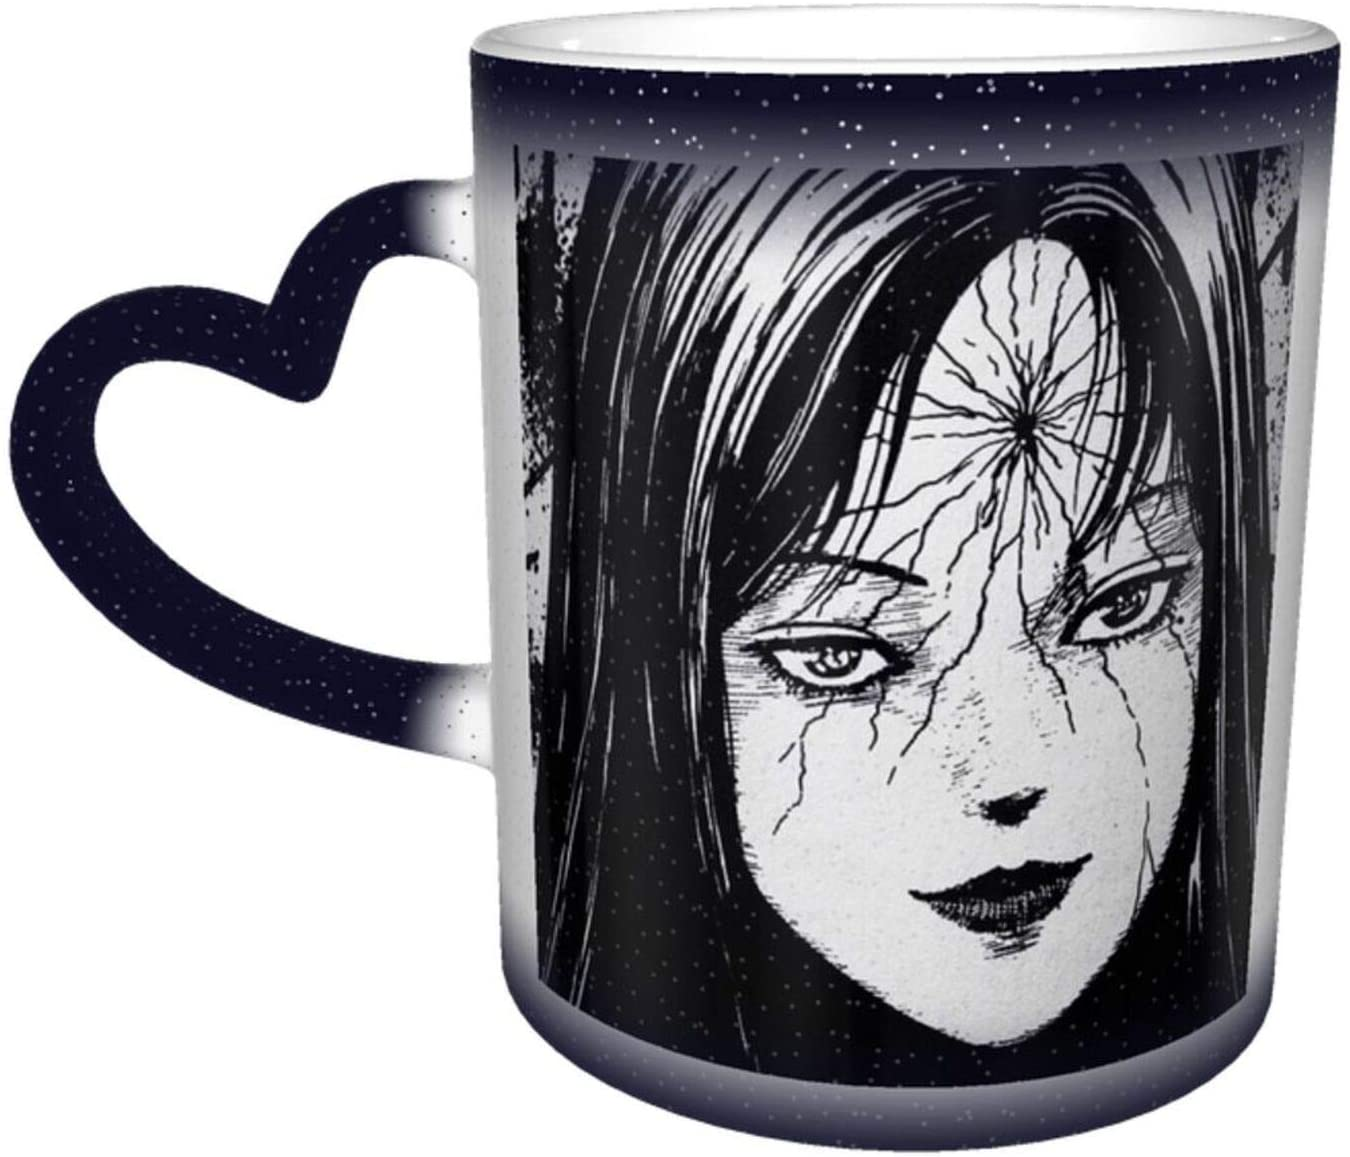 Tiizy Junji Ito Heat Sensitive Color Changing Color Cup Changing Mug In The Sky Magic Funny Art Coffee Mugs Ceramic Cup Personalized Gifts For Family Lovers Friends